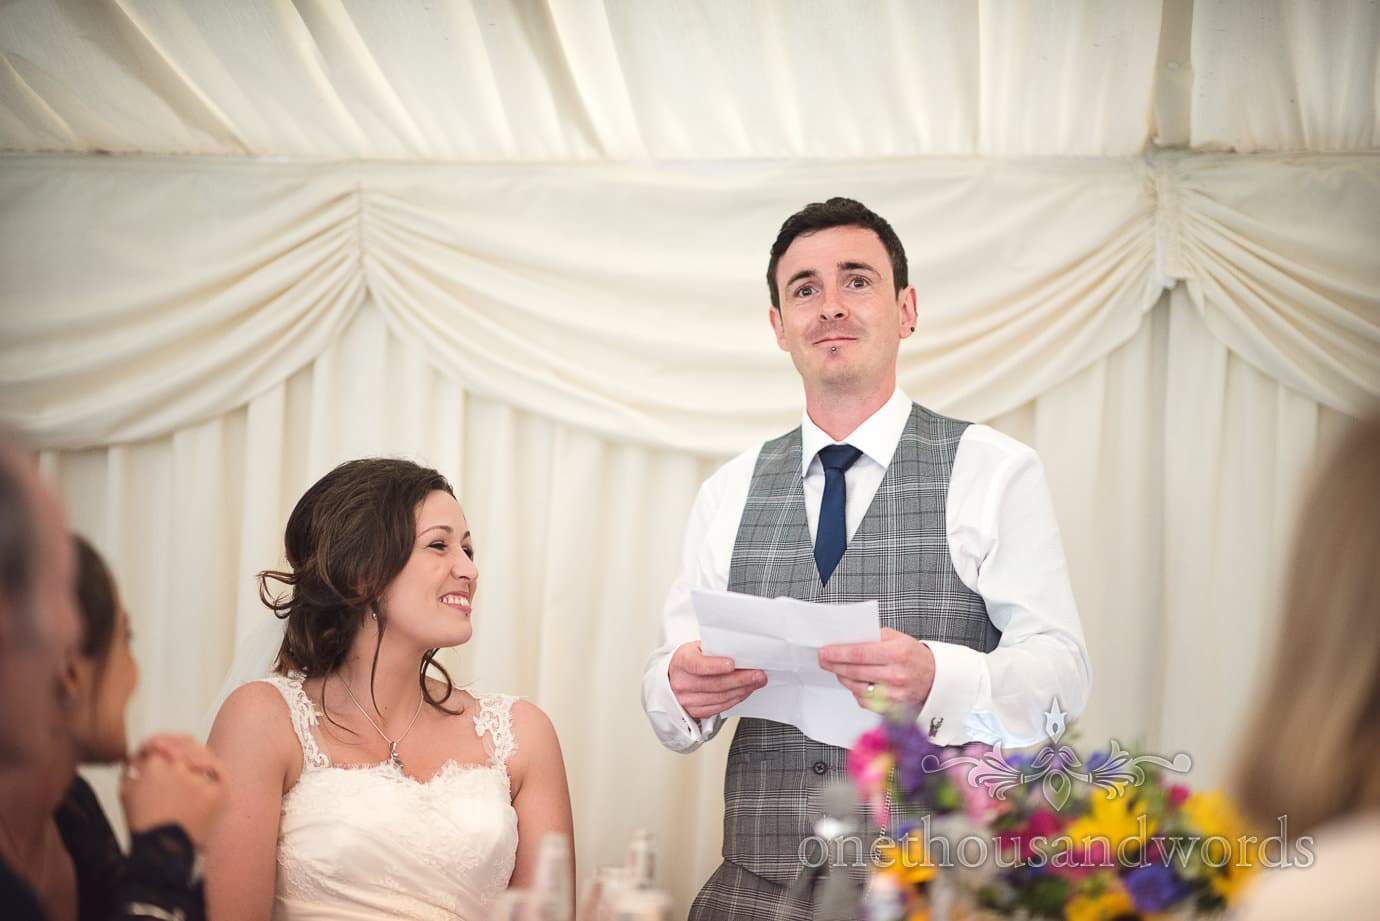 Grooms wedding speech in white marquee at The Old Vicarage Wedding venue in New Forest